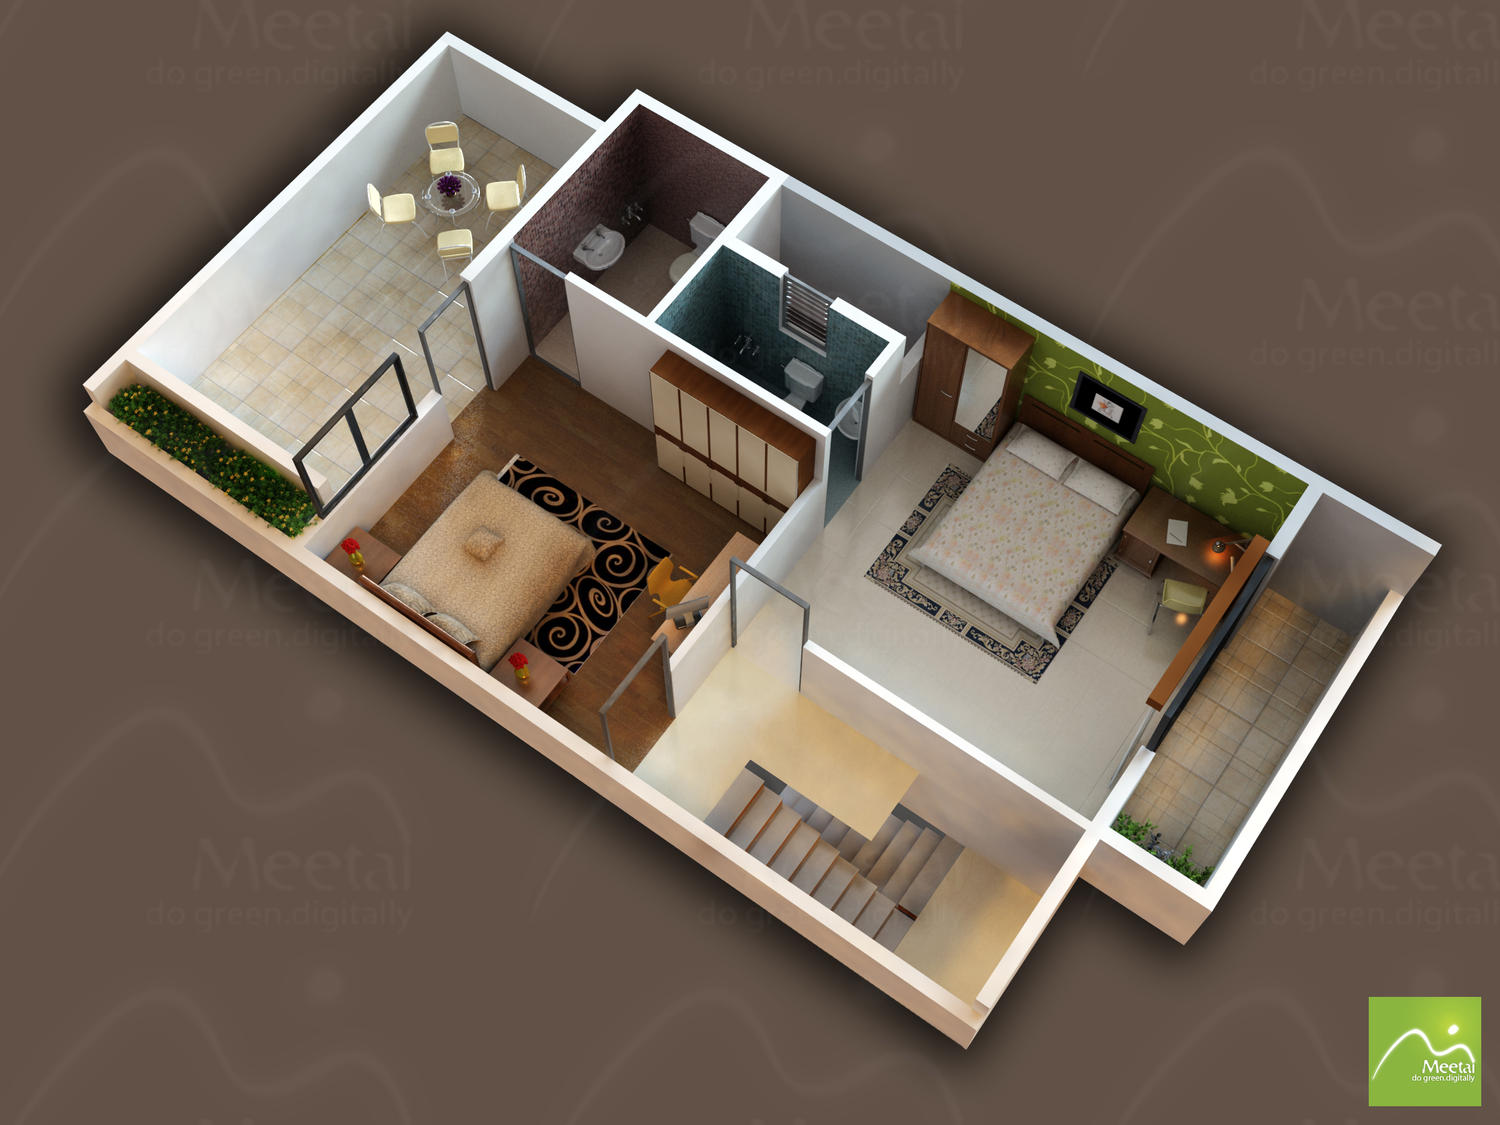 3D Floor Plan Modelling & Rendering by meetai - 36234